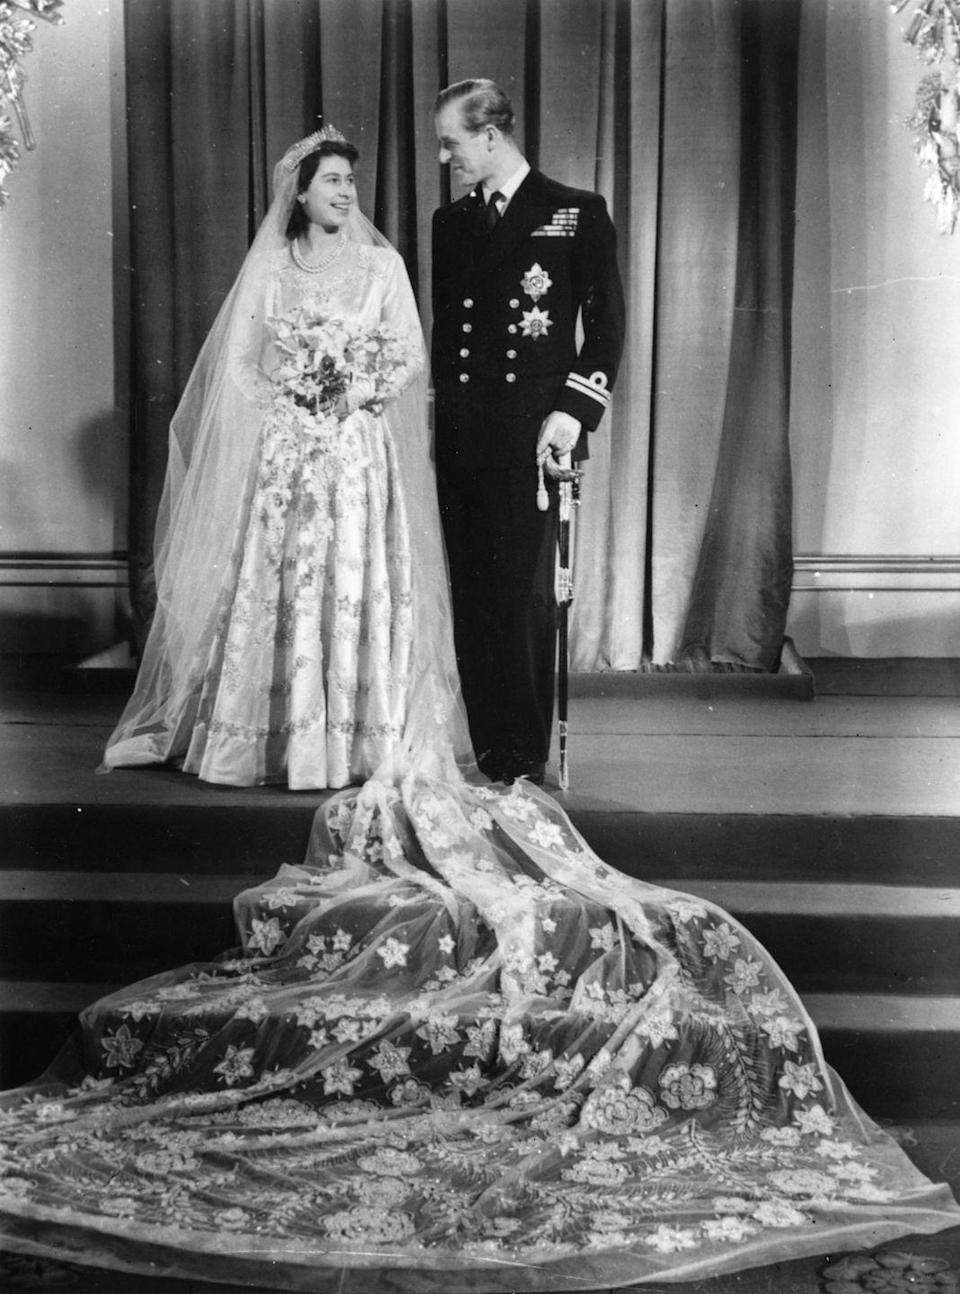 """<p>A young Princess Elizabeth with Philip Mountbatten on their <a href=""""https://www.goodhousekeeping.com/uk/news/a558113/queen-elizabeth-wedding-day-letter-from-father/"""" rel=""""nofollow noopener"""" target=""""_blank"""" data-ylk=""""slk:wedding day"""" class=""""link rapid-noclick-resp"""">wedding day</a>.</p>"""